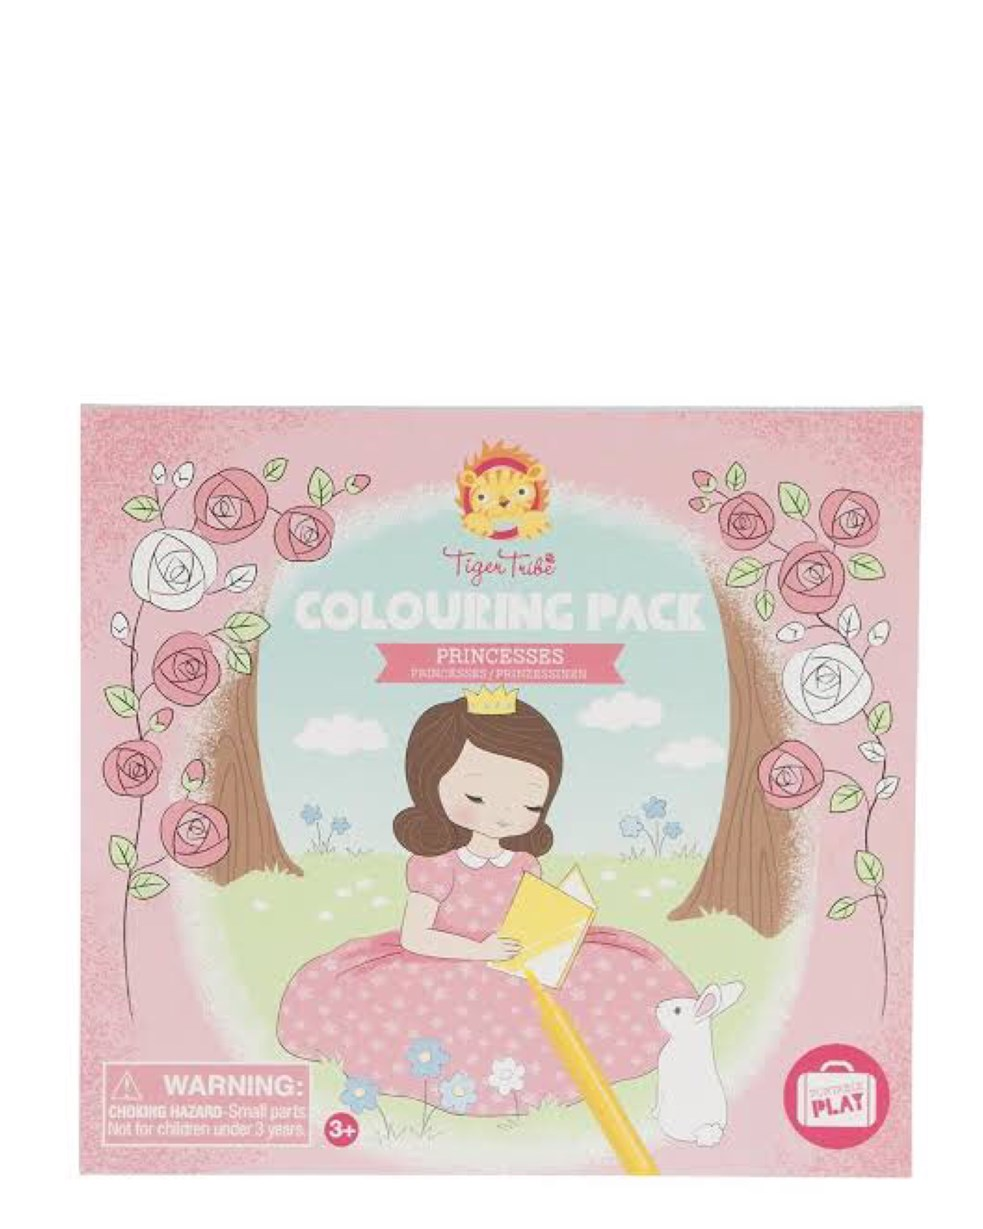 Tiger Tribe Colouring Pack - Princesses